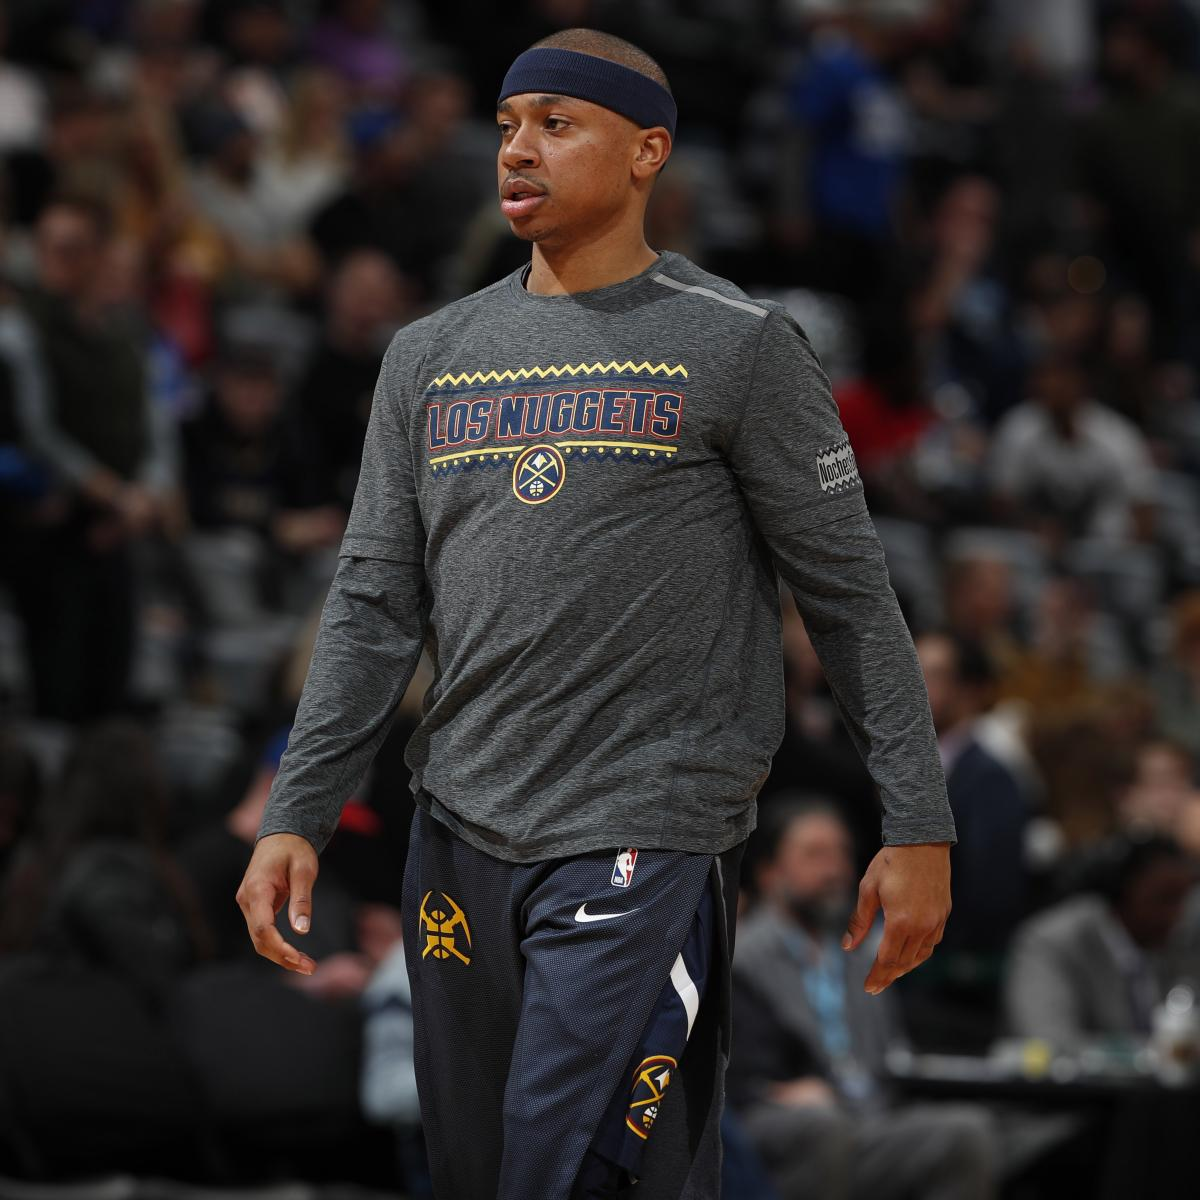 Watch Nuggets' Isaiah Thomas Get Ovation From Celtics